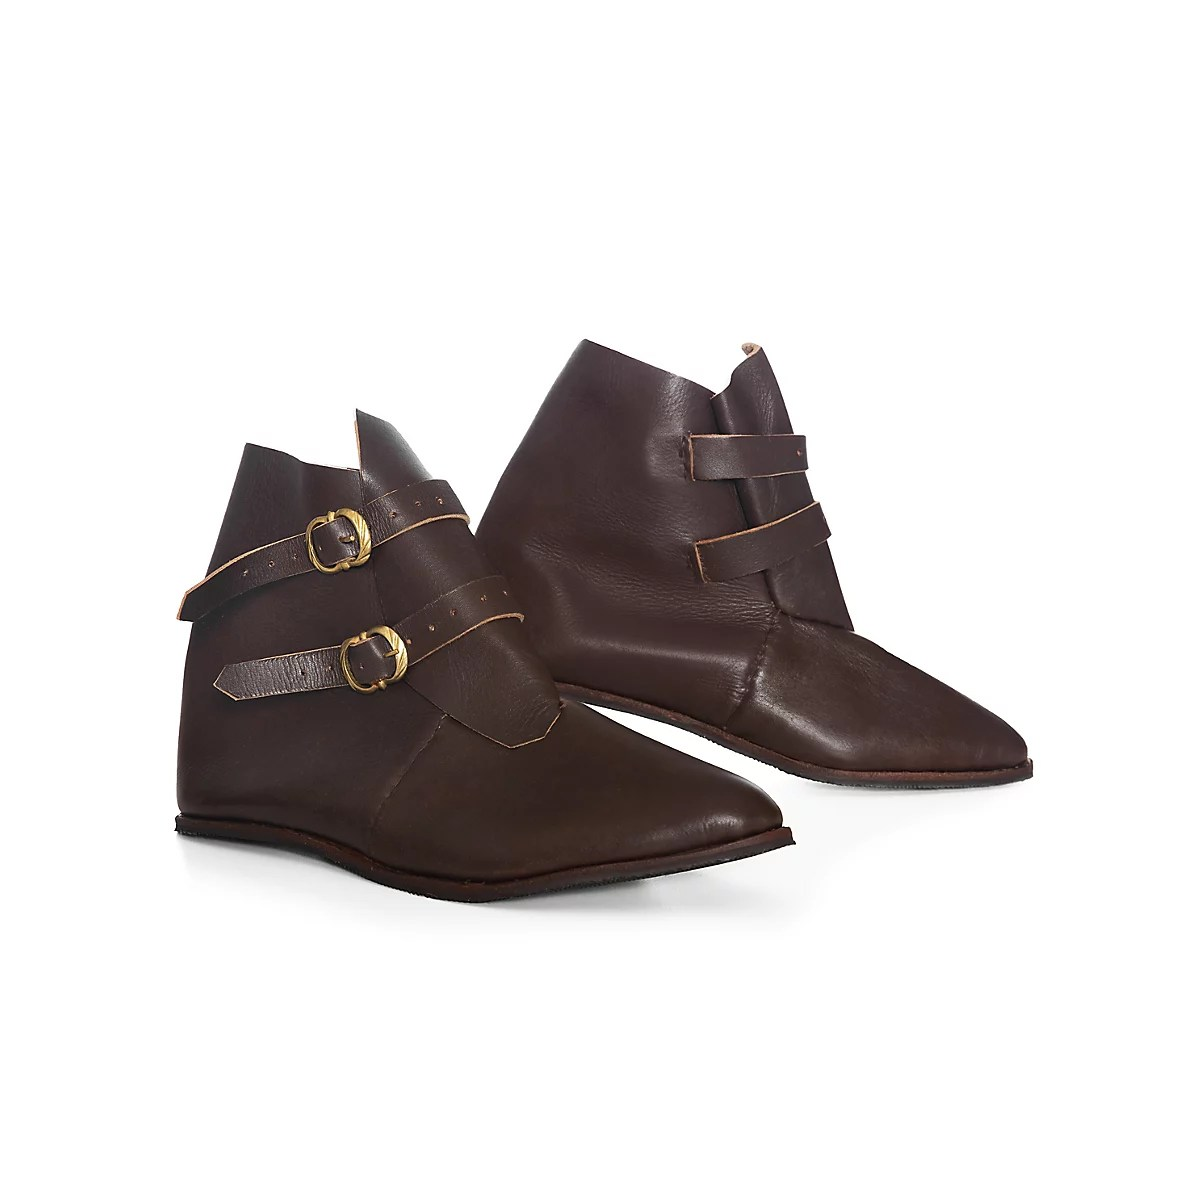 Me Val Half Boot With 2 Buckles